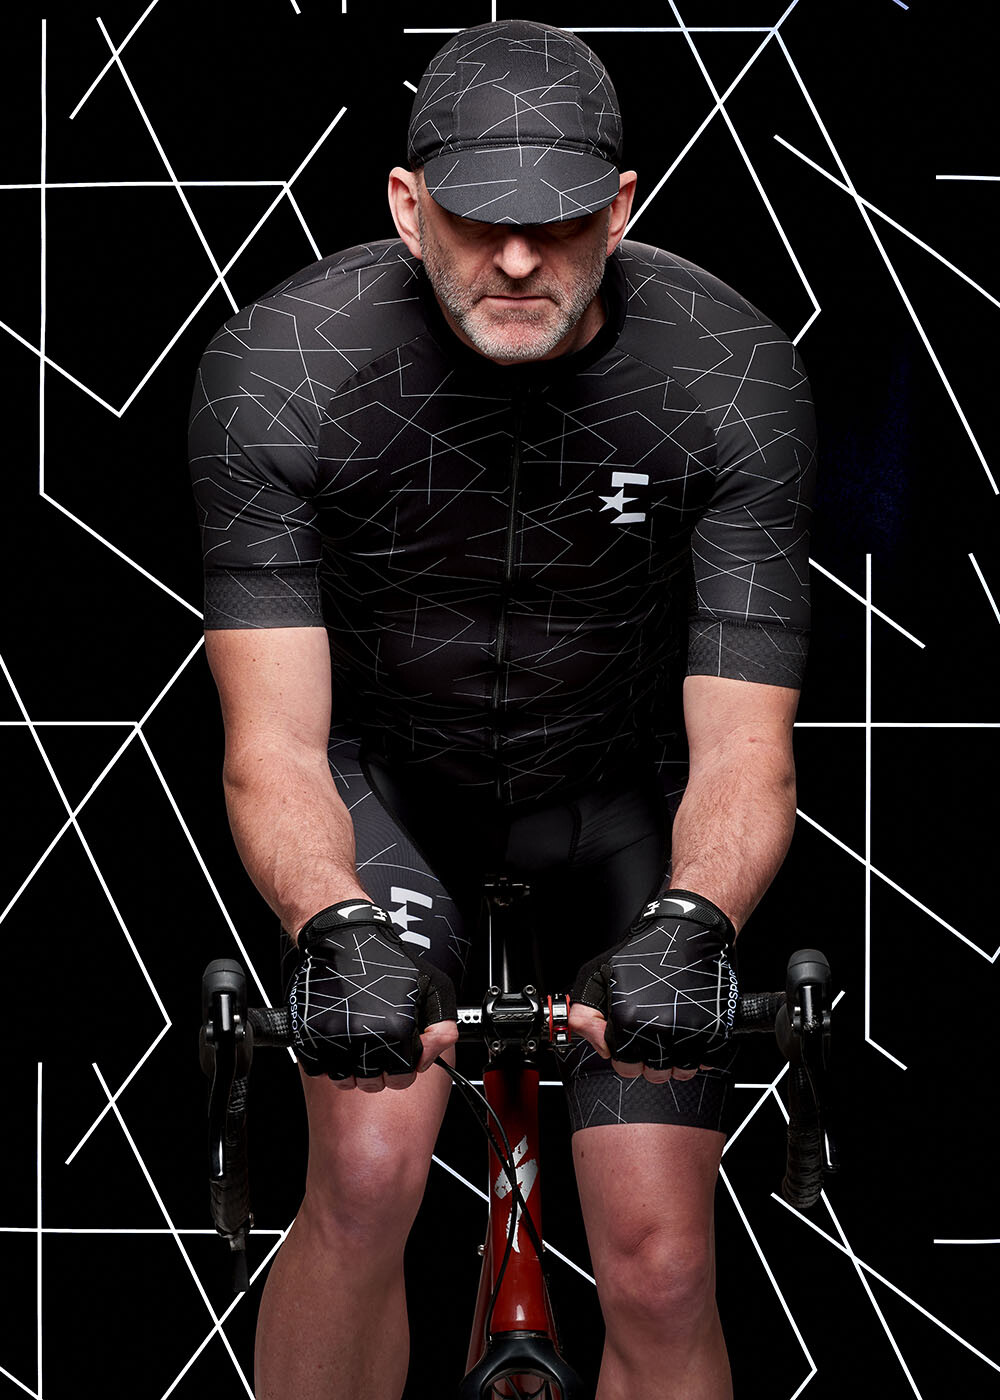 Cyclist wearing black cyclewear